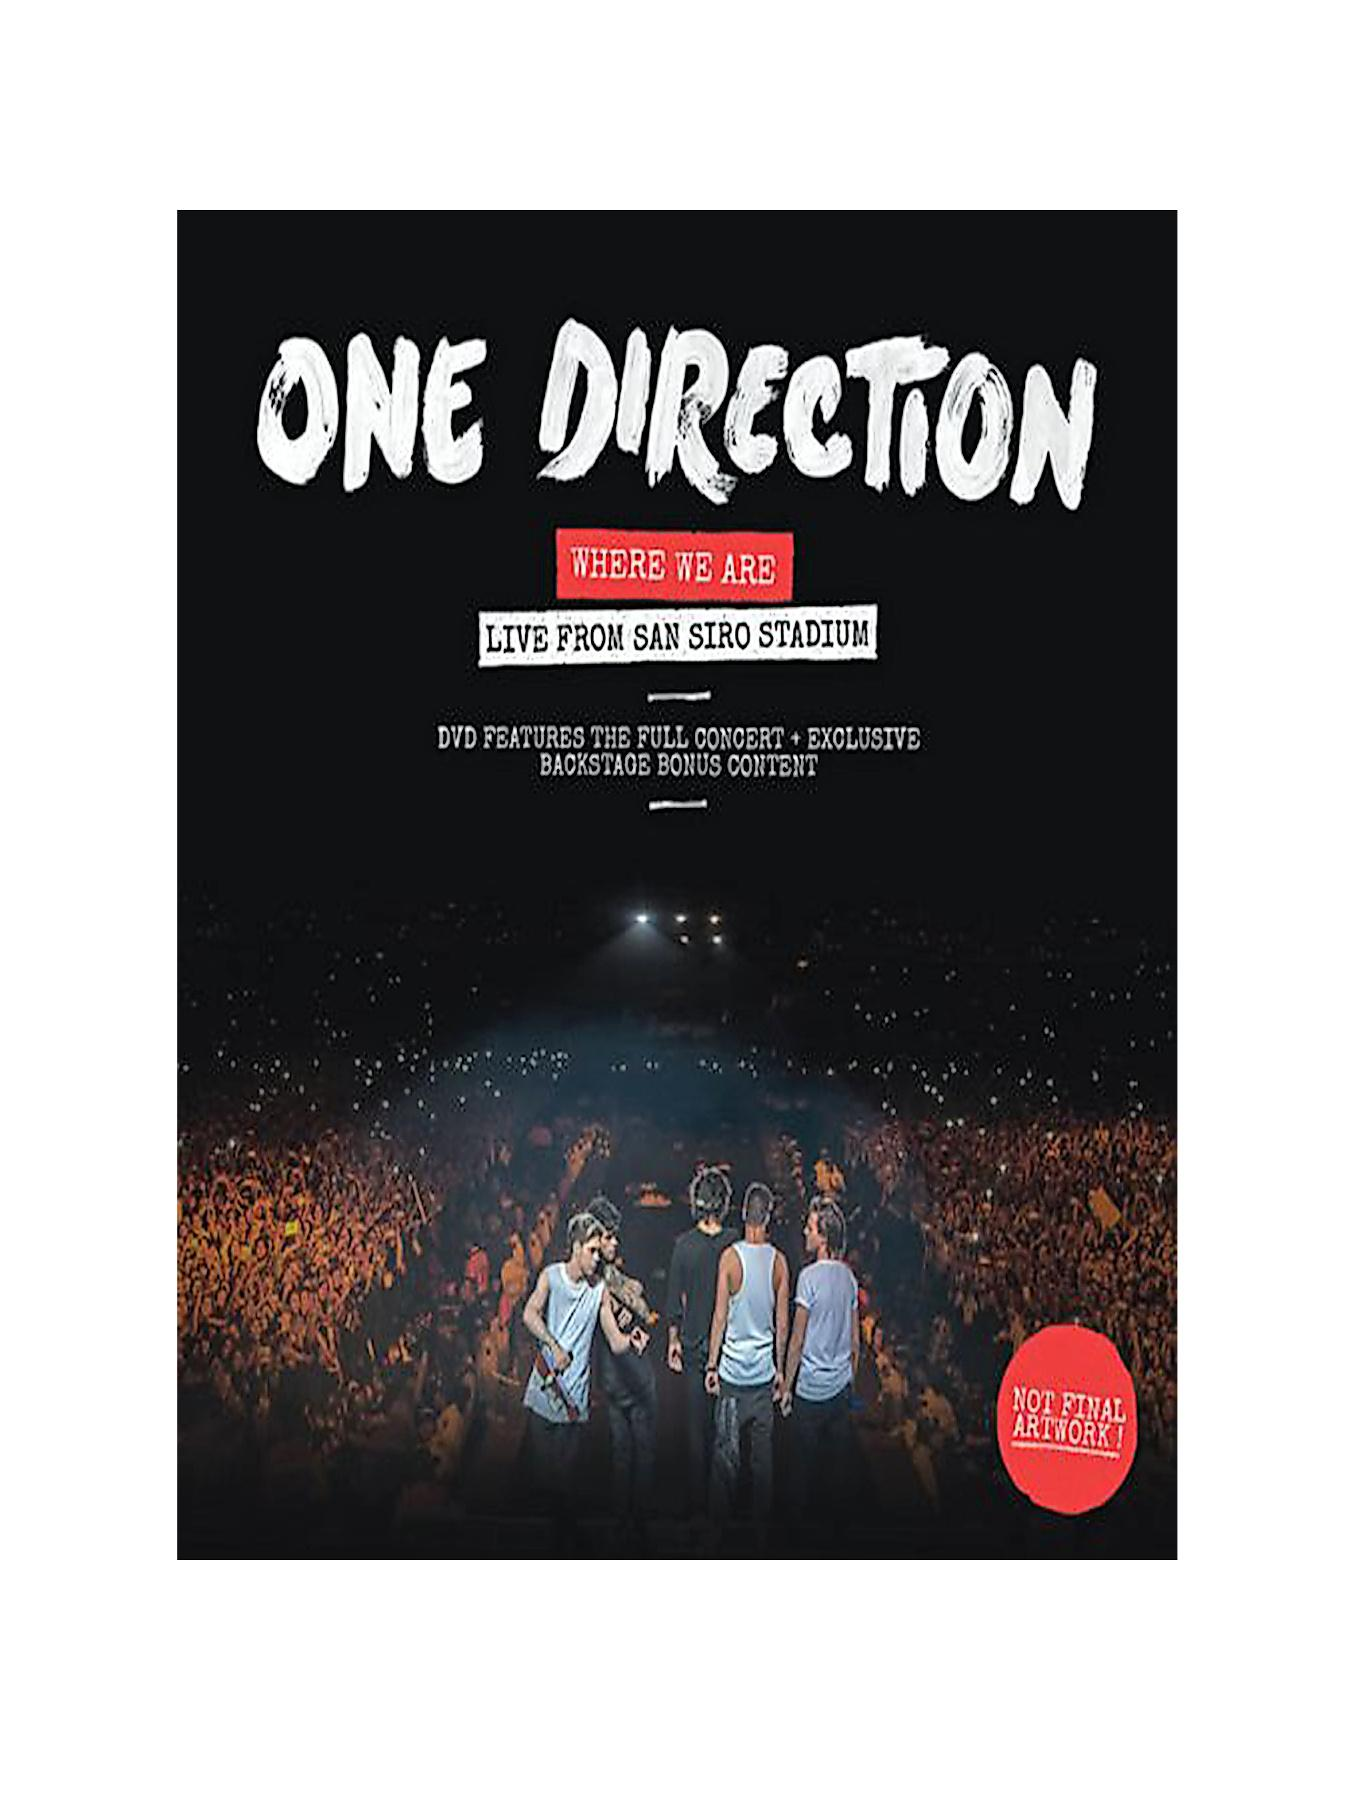 One Direction One Direction - Where We Are (Live from San Siro Stadium/Live Recording) - DVD